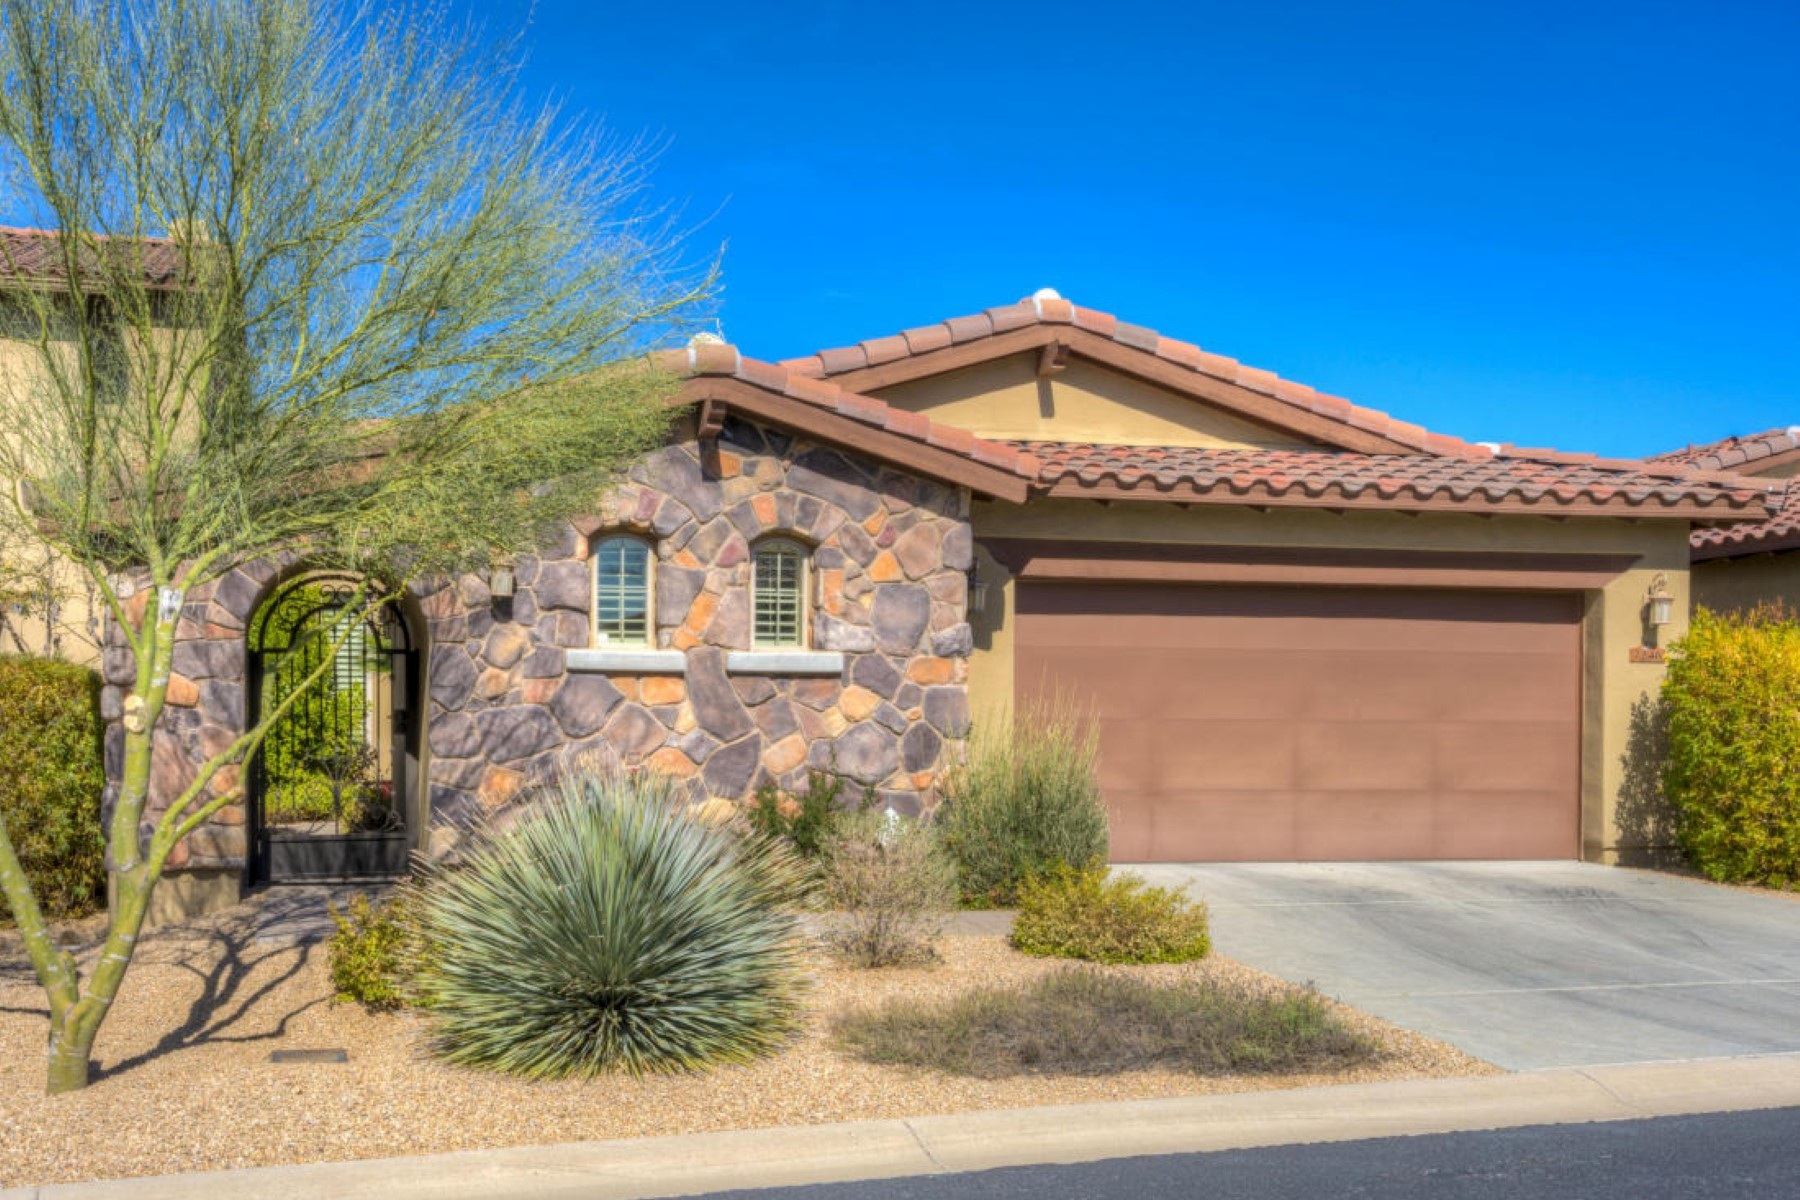 Townhouse for Sale at Highly desired floor plan in gated community of Solstice 7246 E Aurora Dr Scottsdale, Arizona, 85266 United States